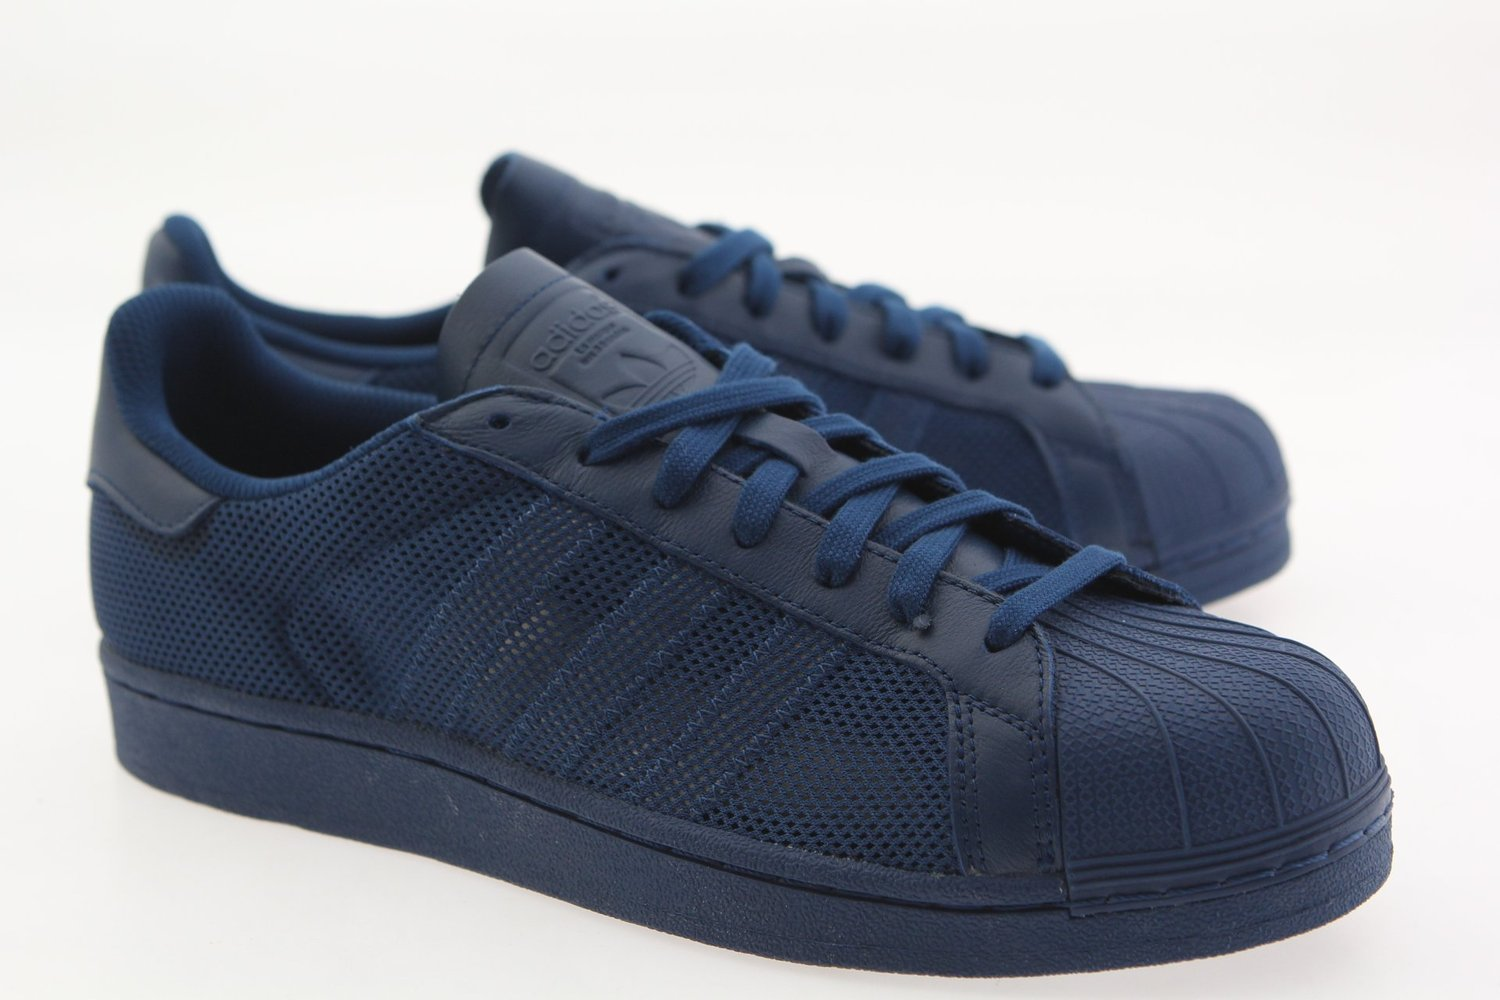 Adidas-Mens-Superstar-Triple-Sneakers-Navy-BB3695